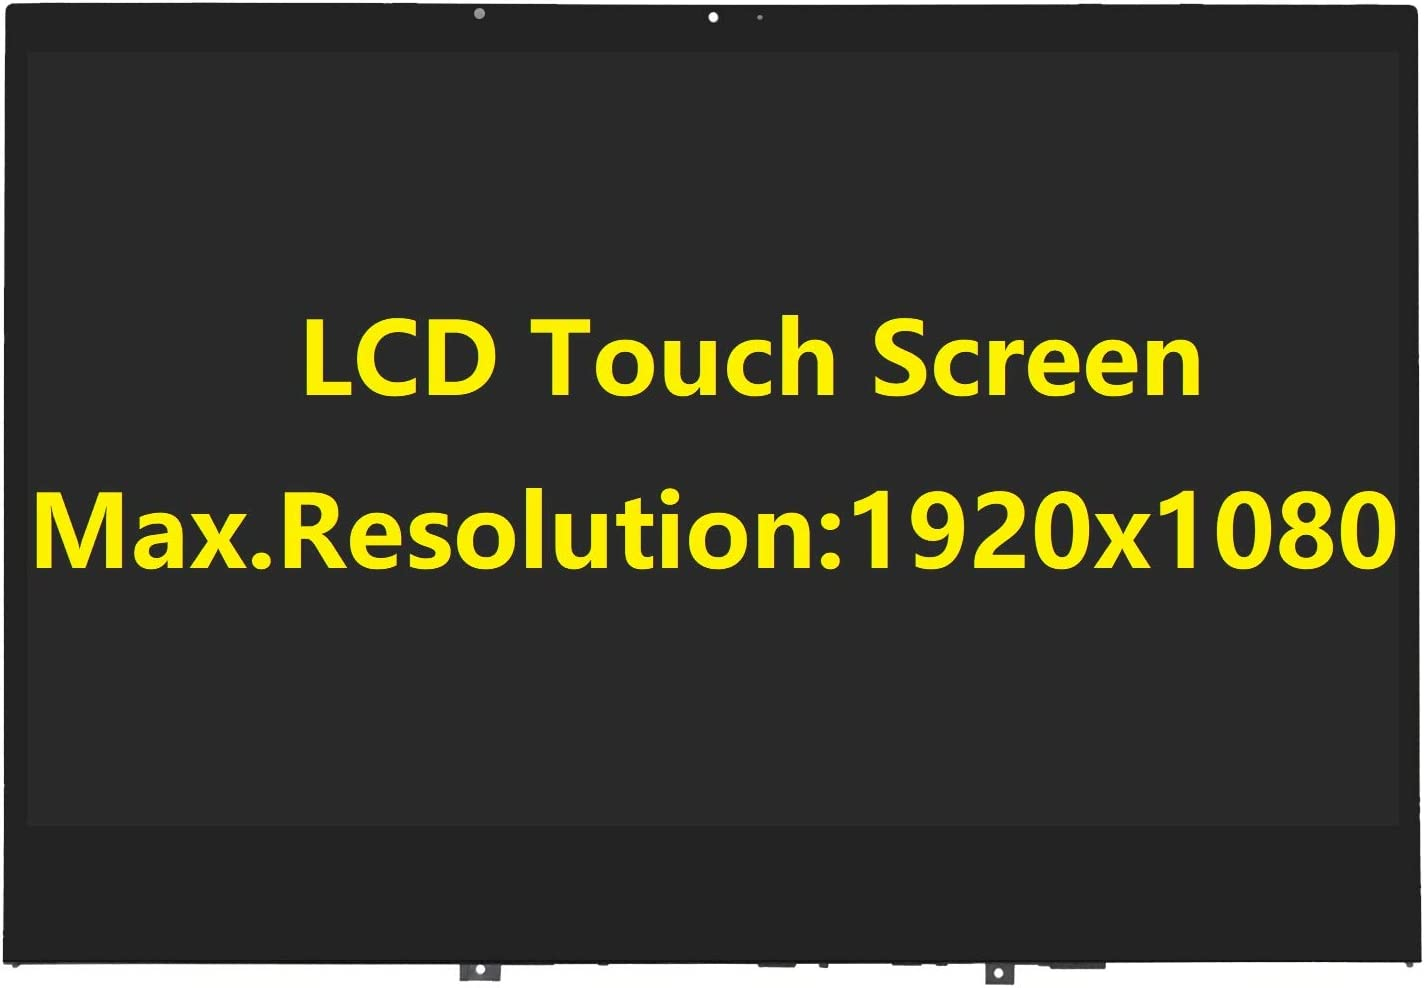 New Replacement for Lenovo Yoga 730-13 81CT0008US 81CT001TUS 81CT0000US LCD LED Touch Screen Digitizer Assembly with Bezel 5D10Q89746 13.3 inch FHD 1920x1080 Version